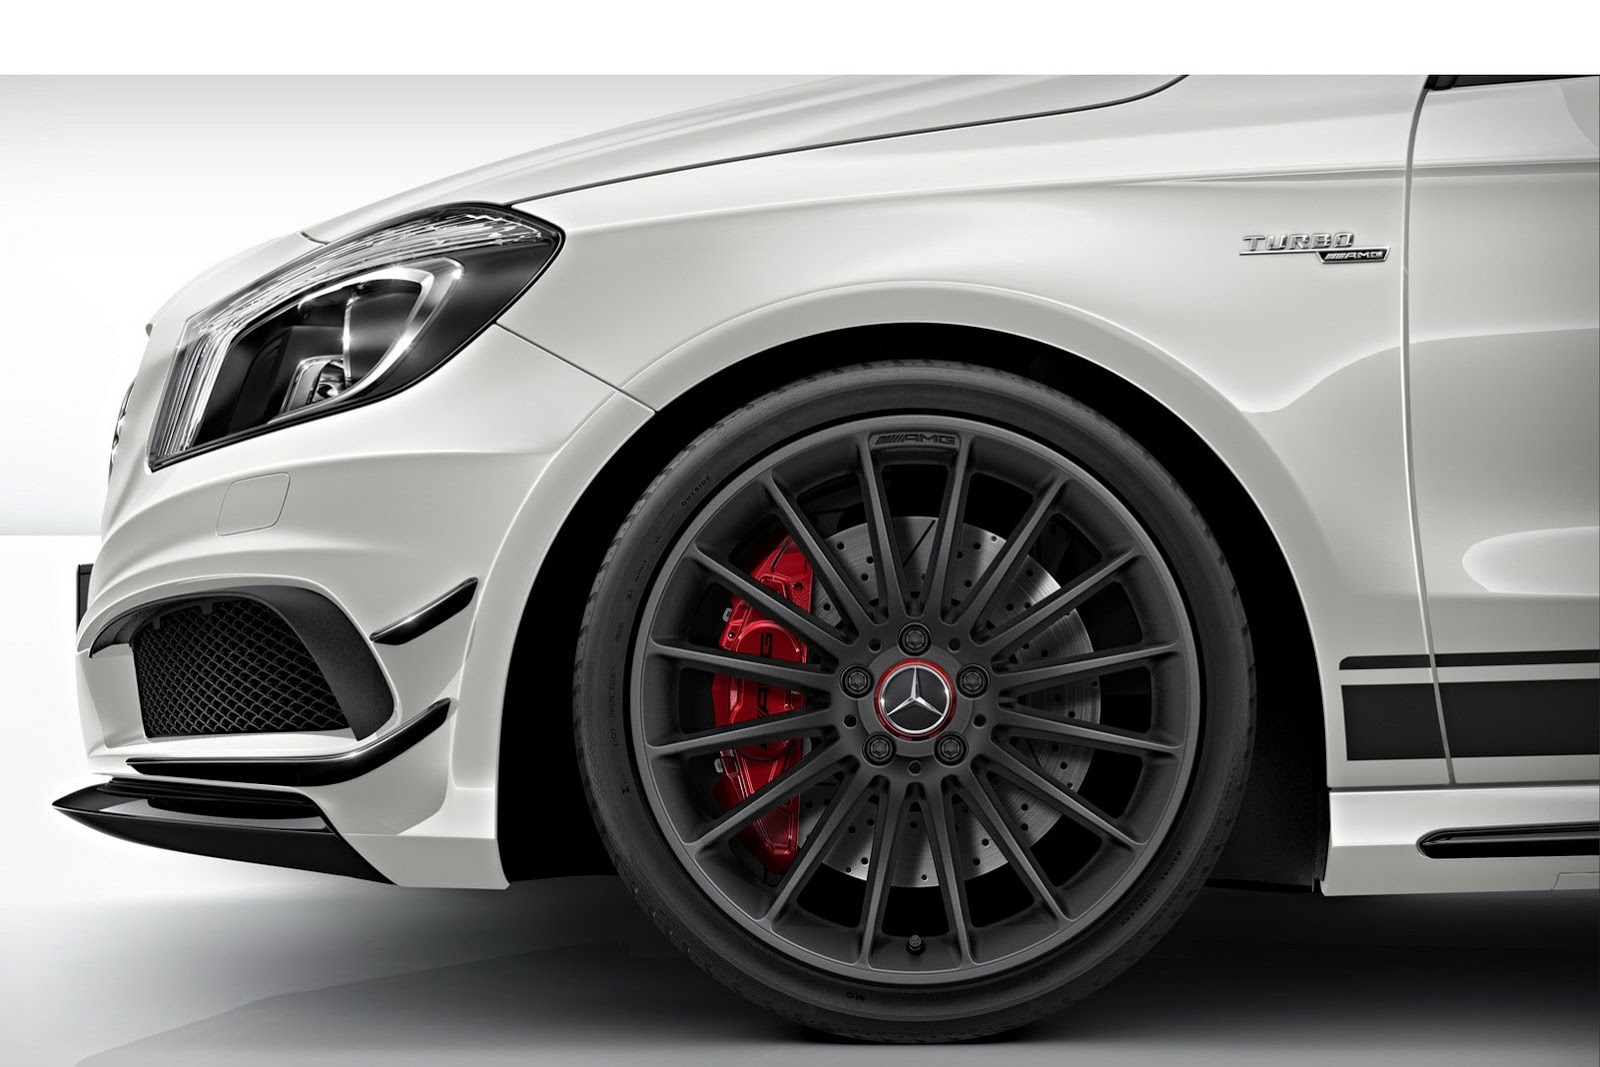 New mercedes benz a45 amg edition 1 cars sketches for Mercedes benz wheel